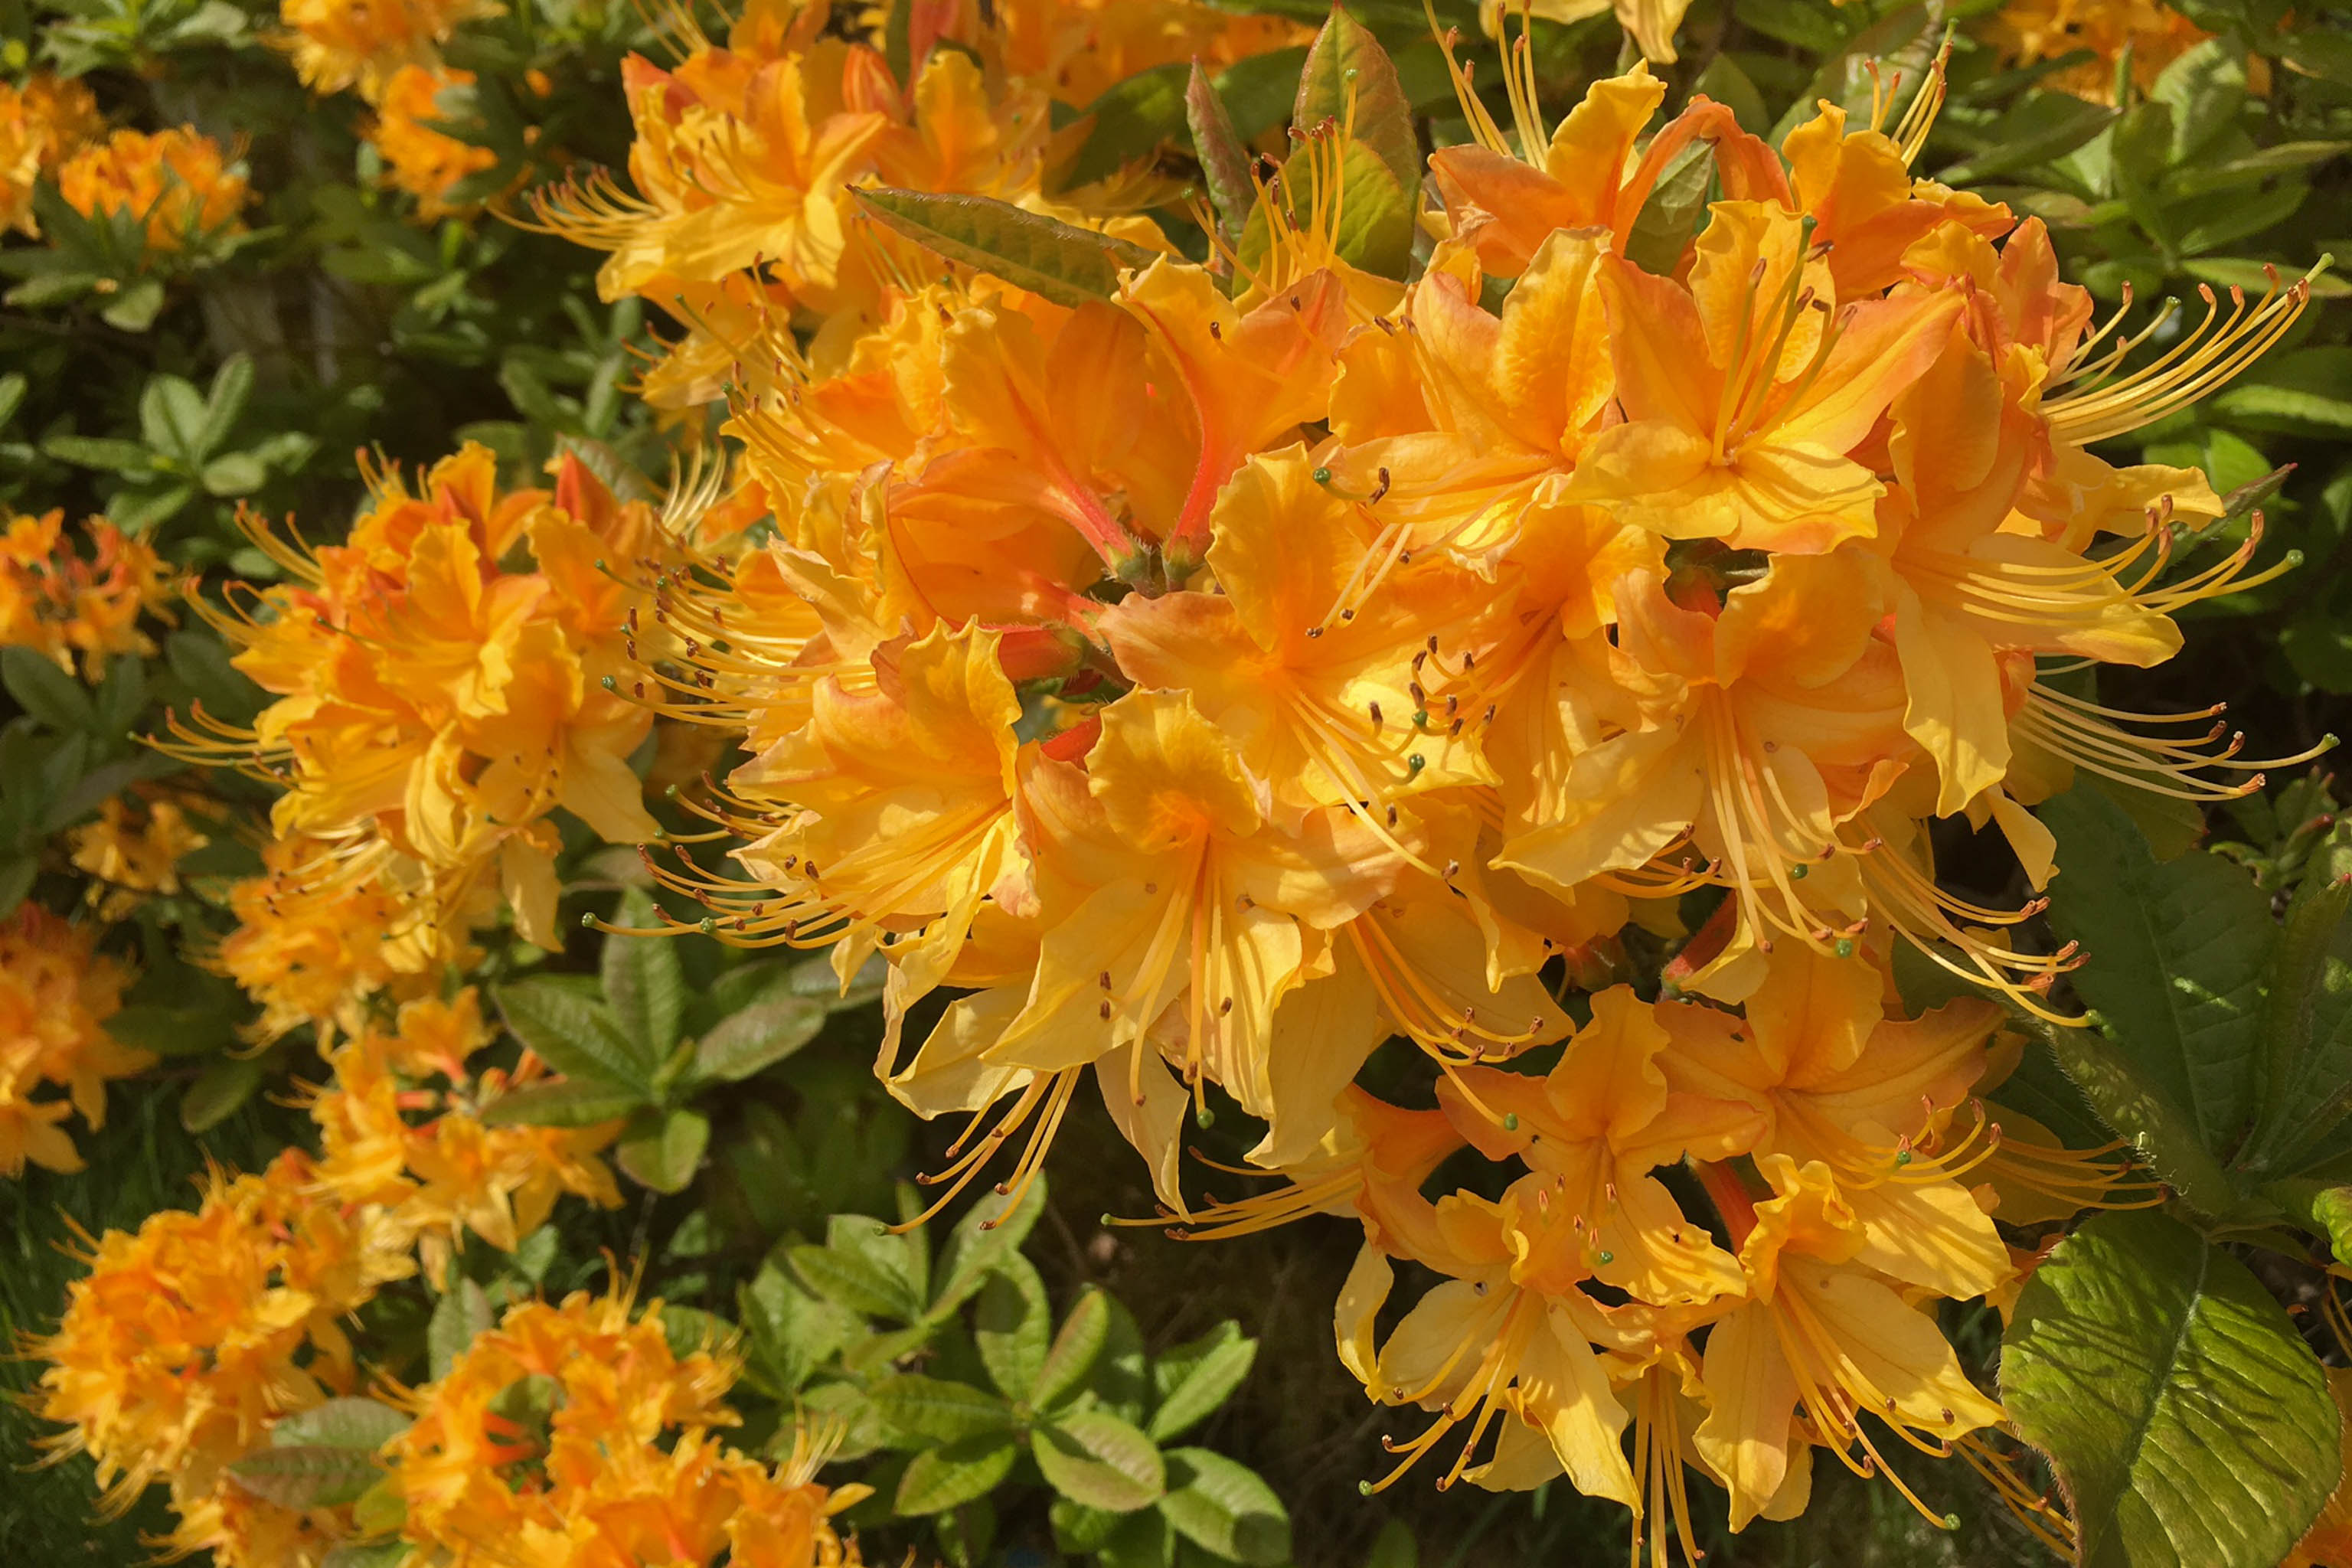 Rhododendron Golden Lights flowers